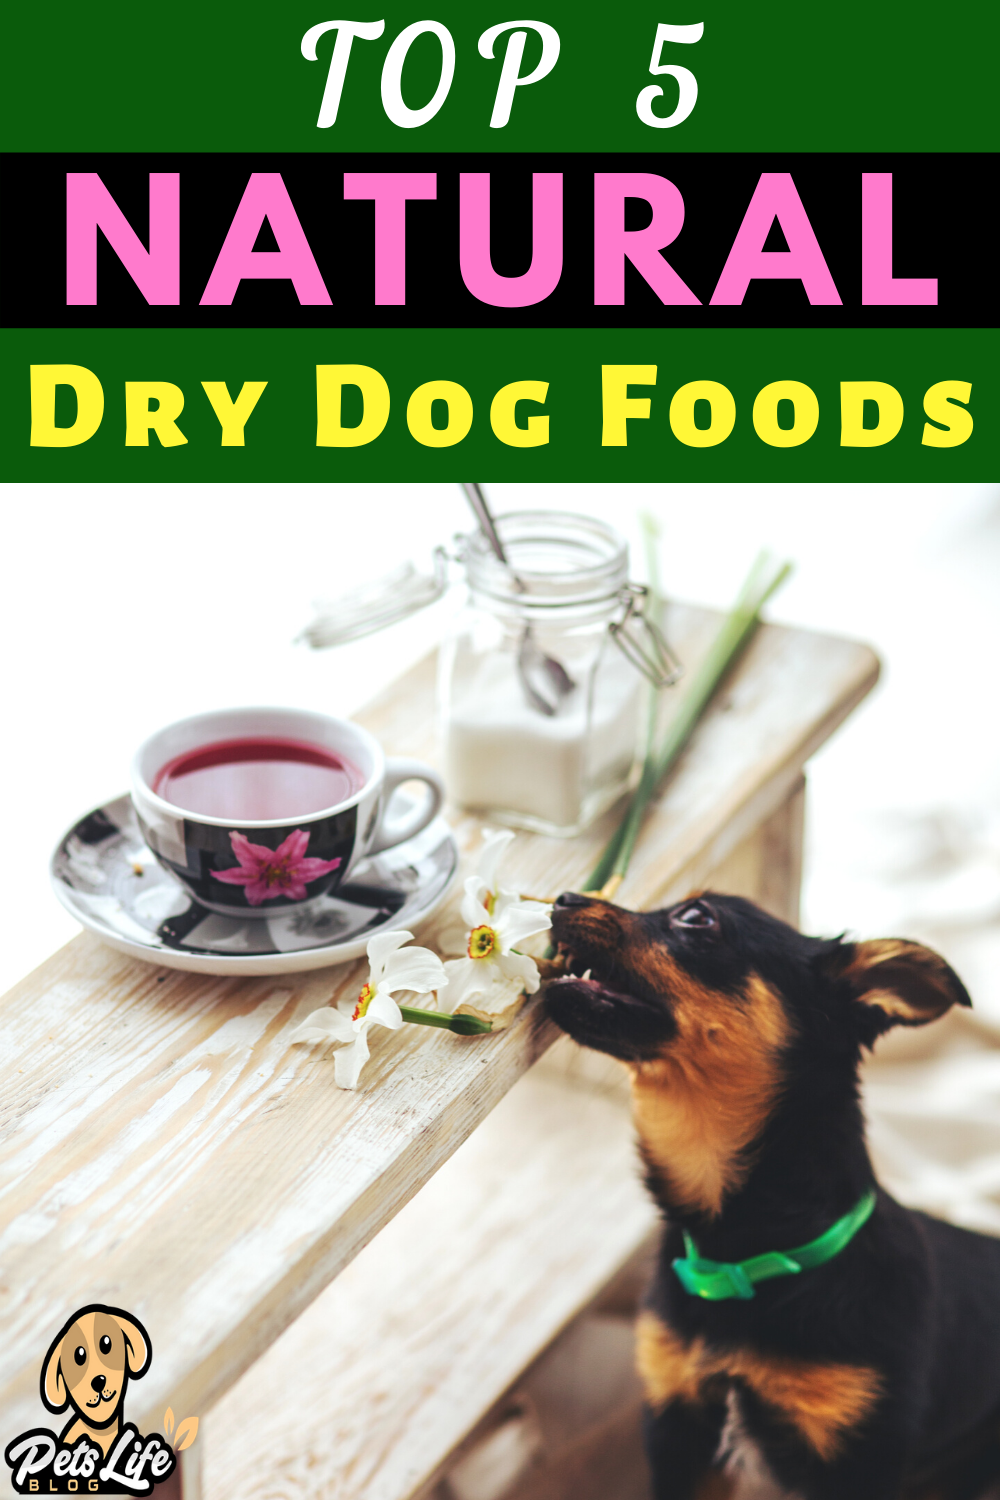 Top 5 Natural Dry Dog Foods in 2020 Dry dog food, Dog